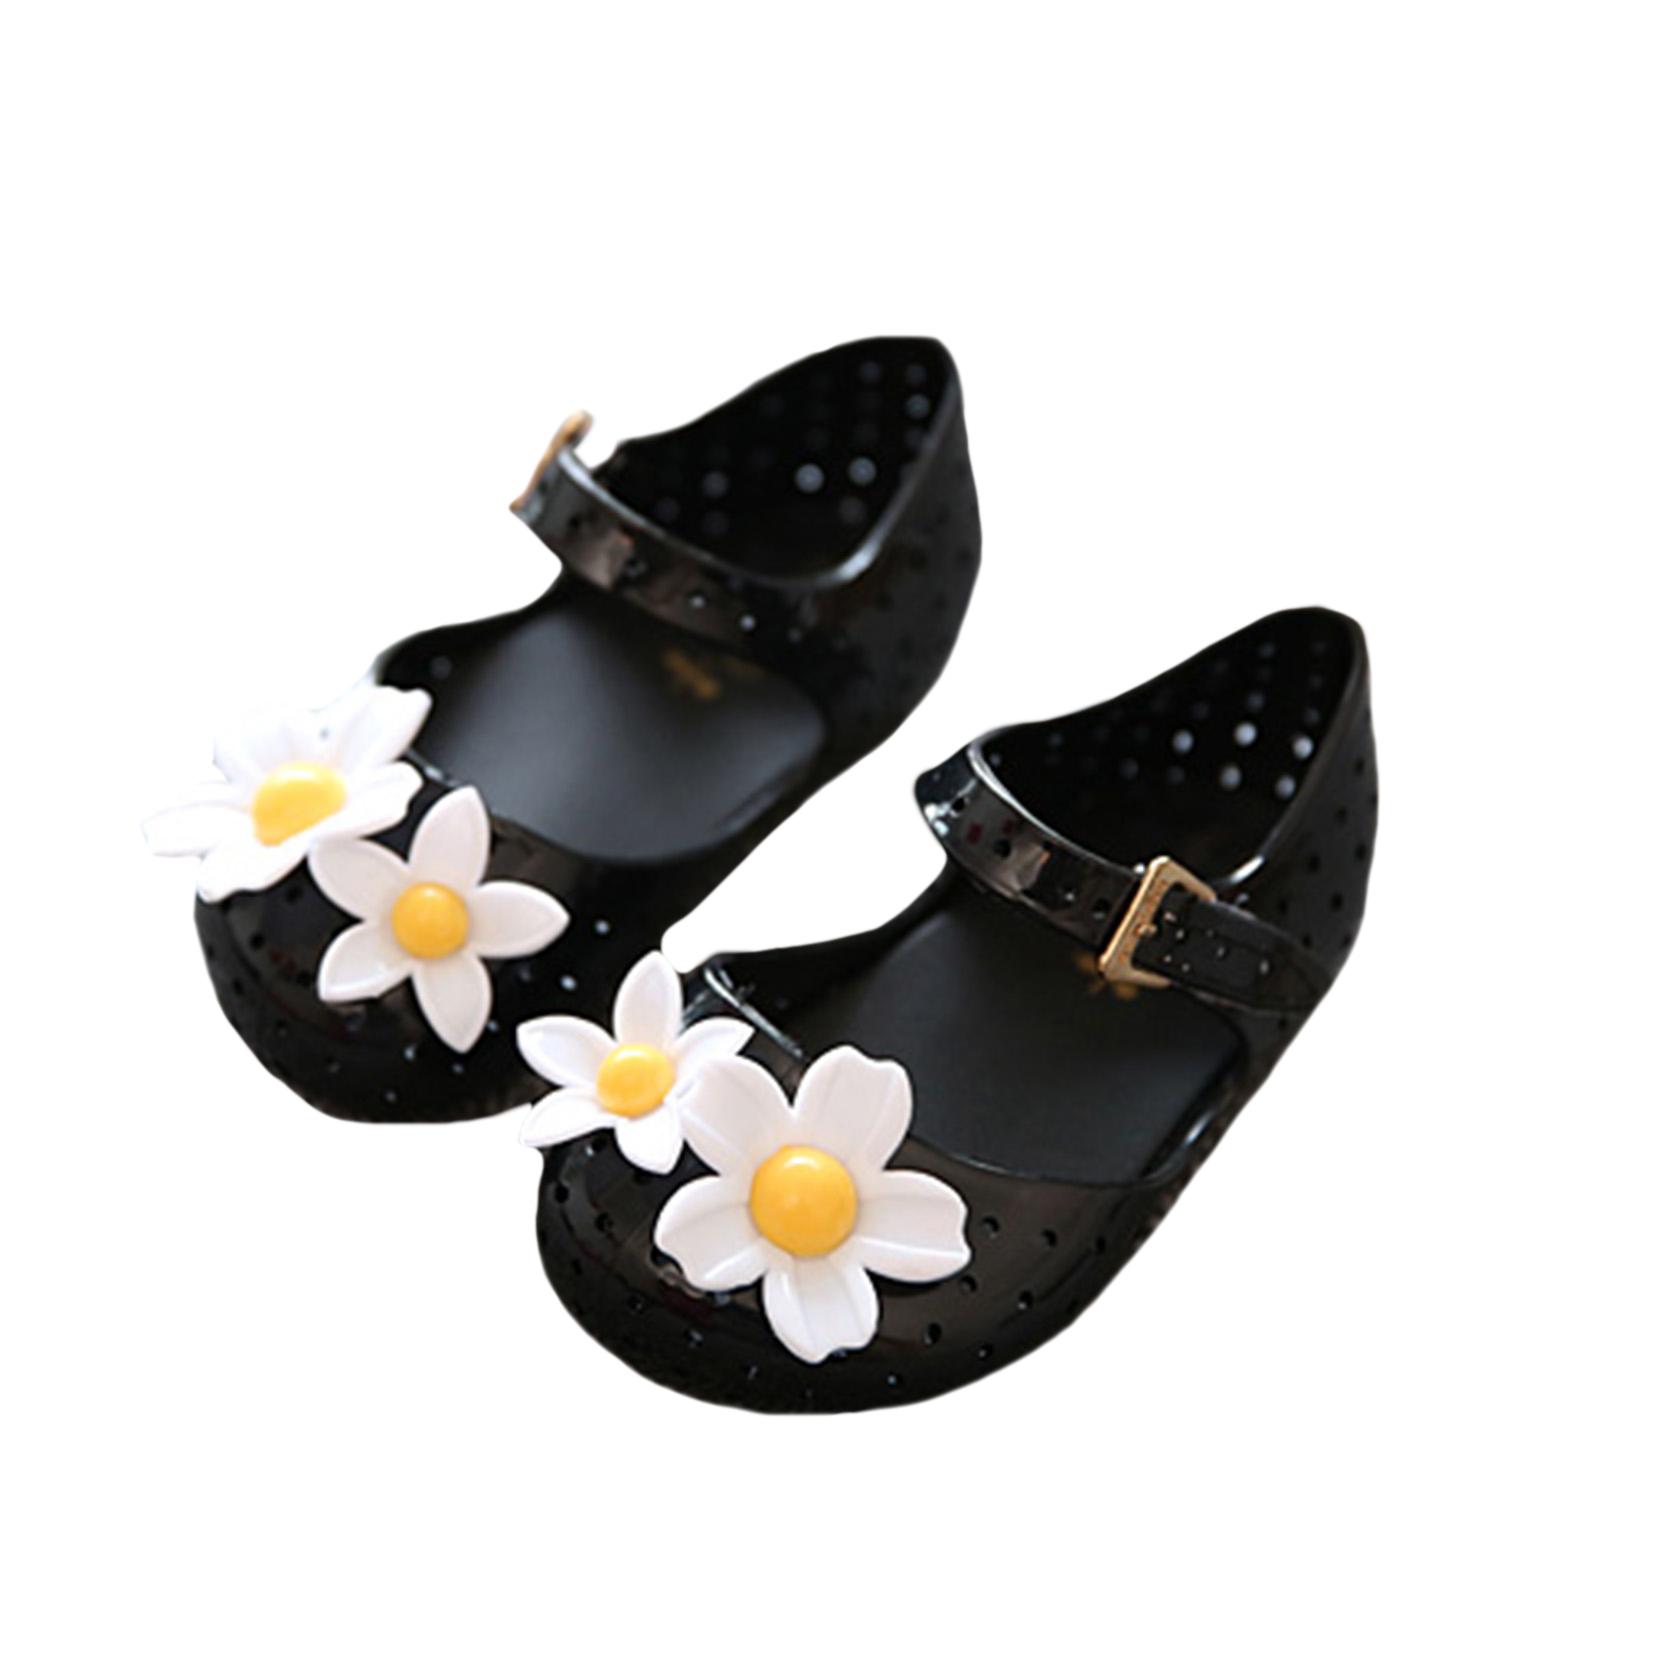 Black sandals baby girl - 2016 Baby Girl Shoes Flower Children Beach Sandals Cute Toddler Hollow Jelly Shoes For Girls Summer Autumn Black Pink